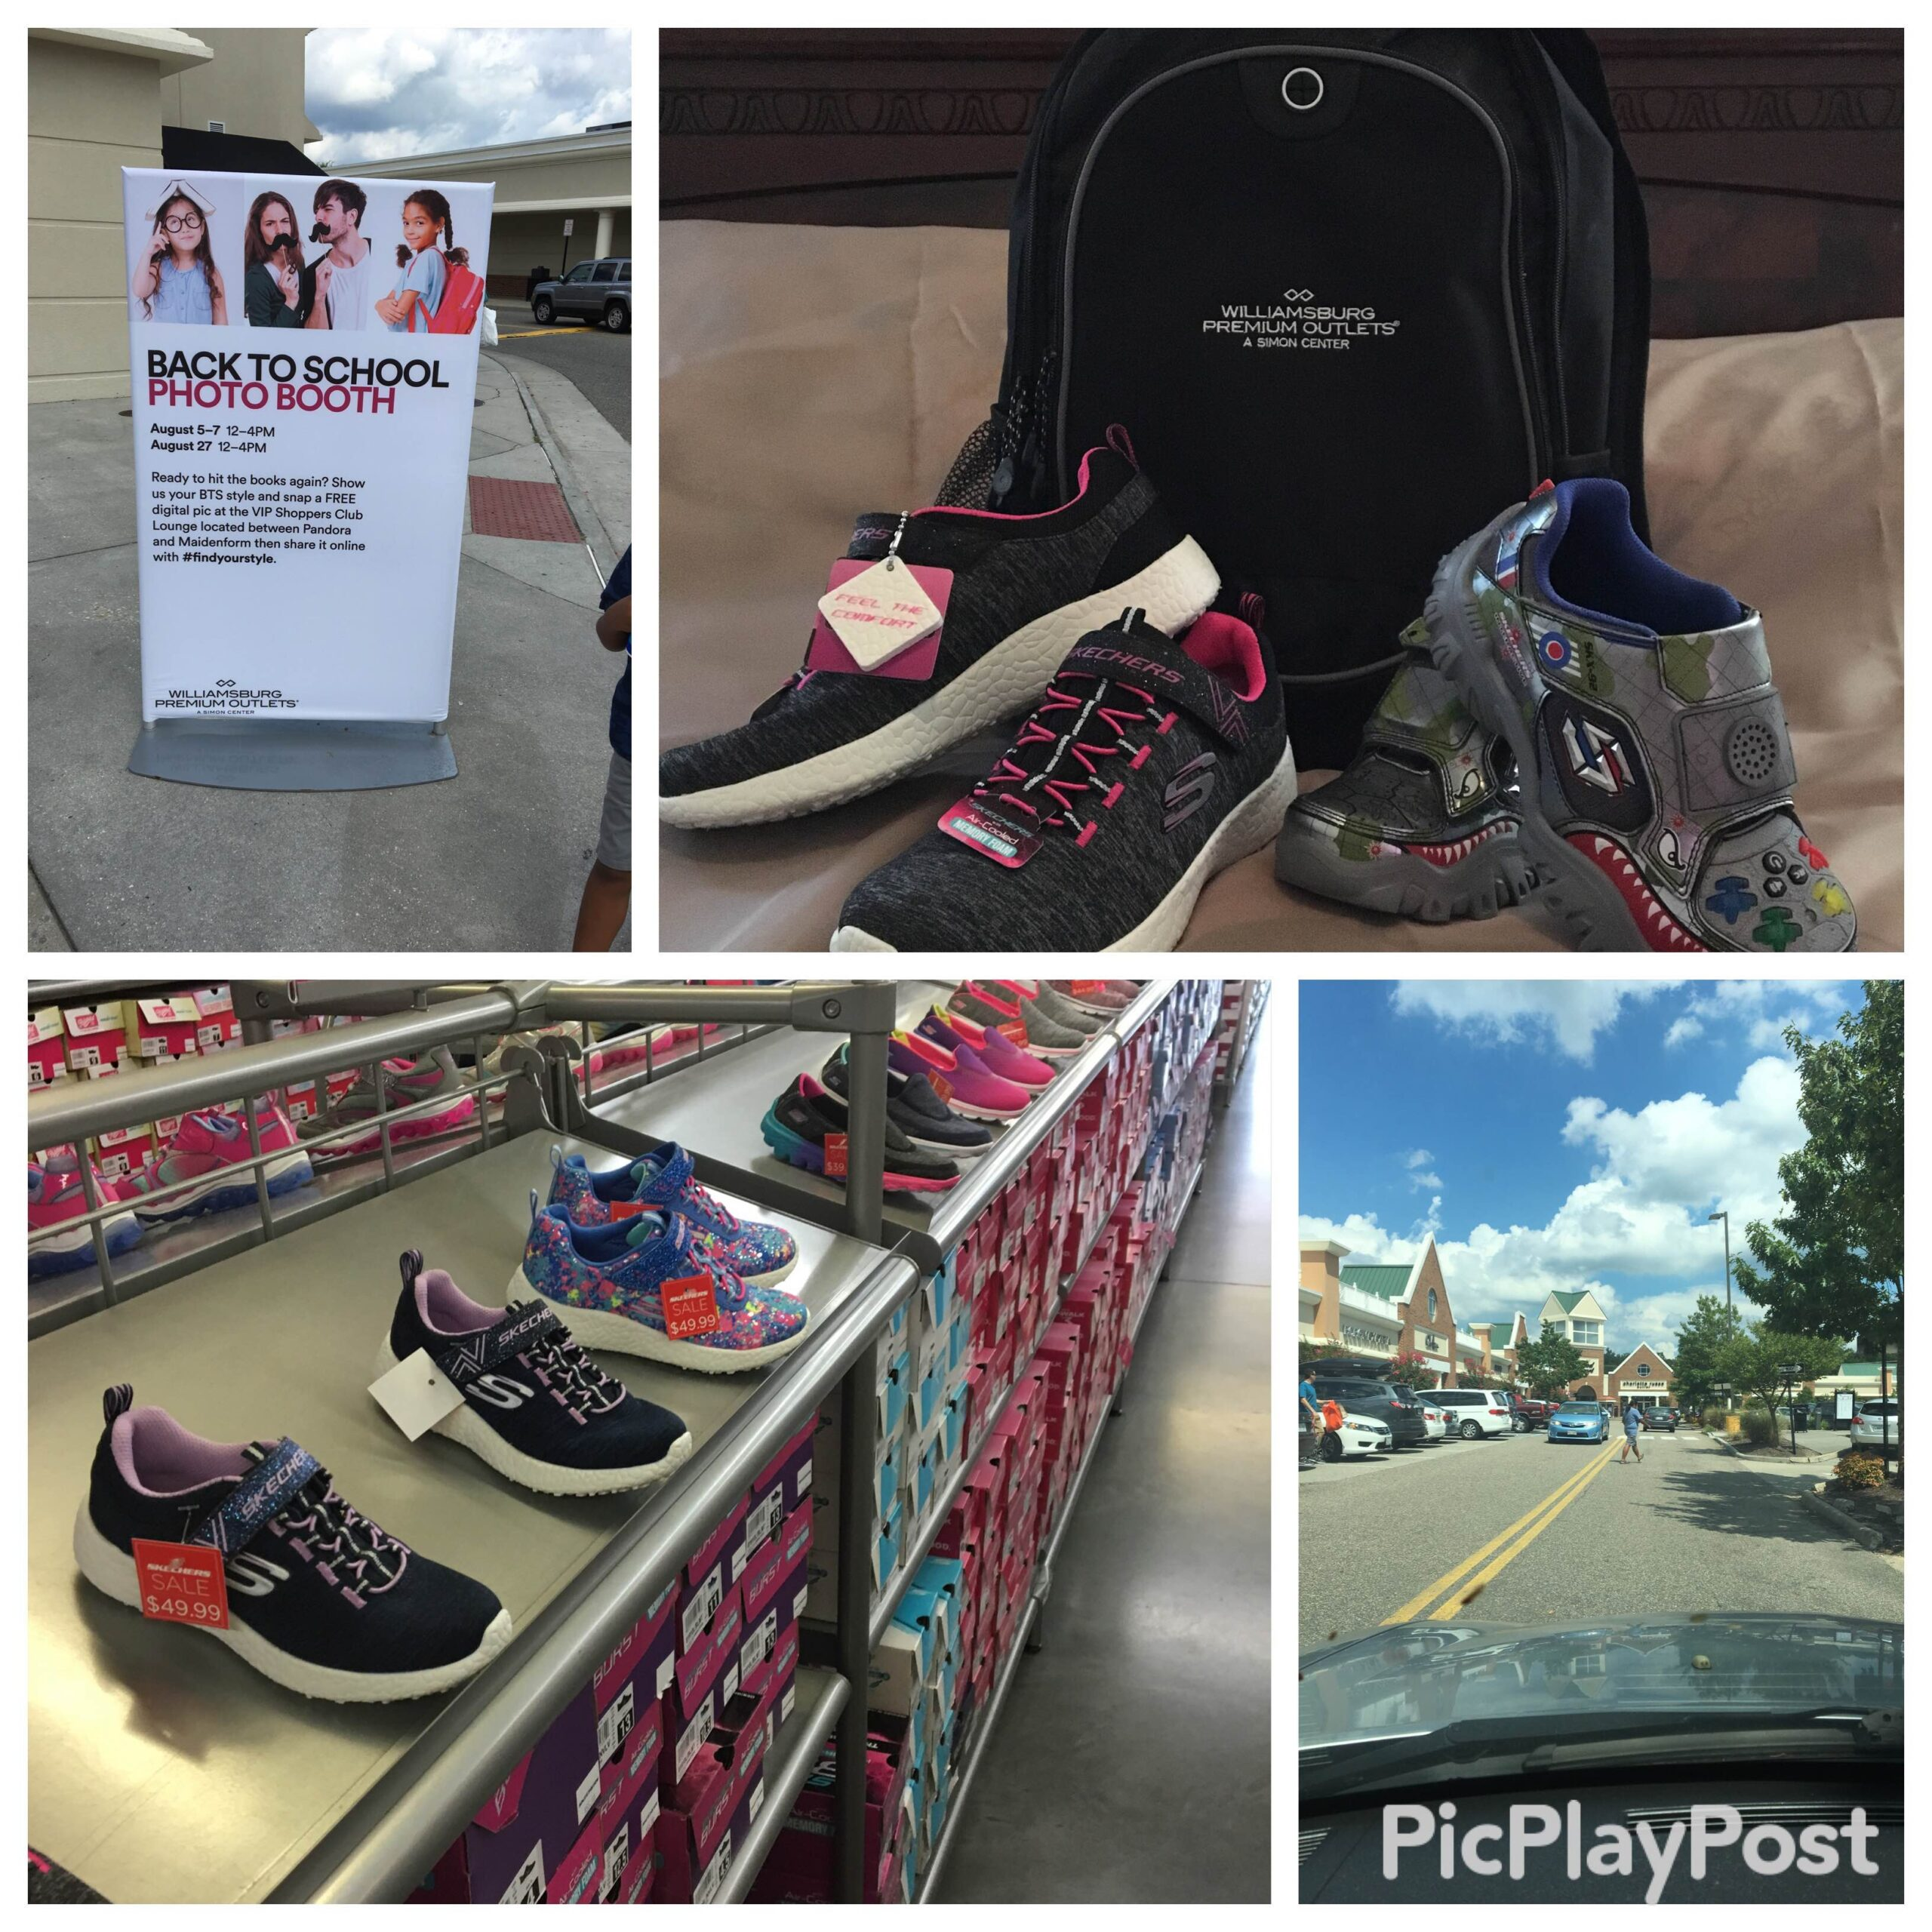 Back To School Shopping Event and Savings with The Williamsburg Premium Outlet!!! #findyourstyle #backtoschool